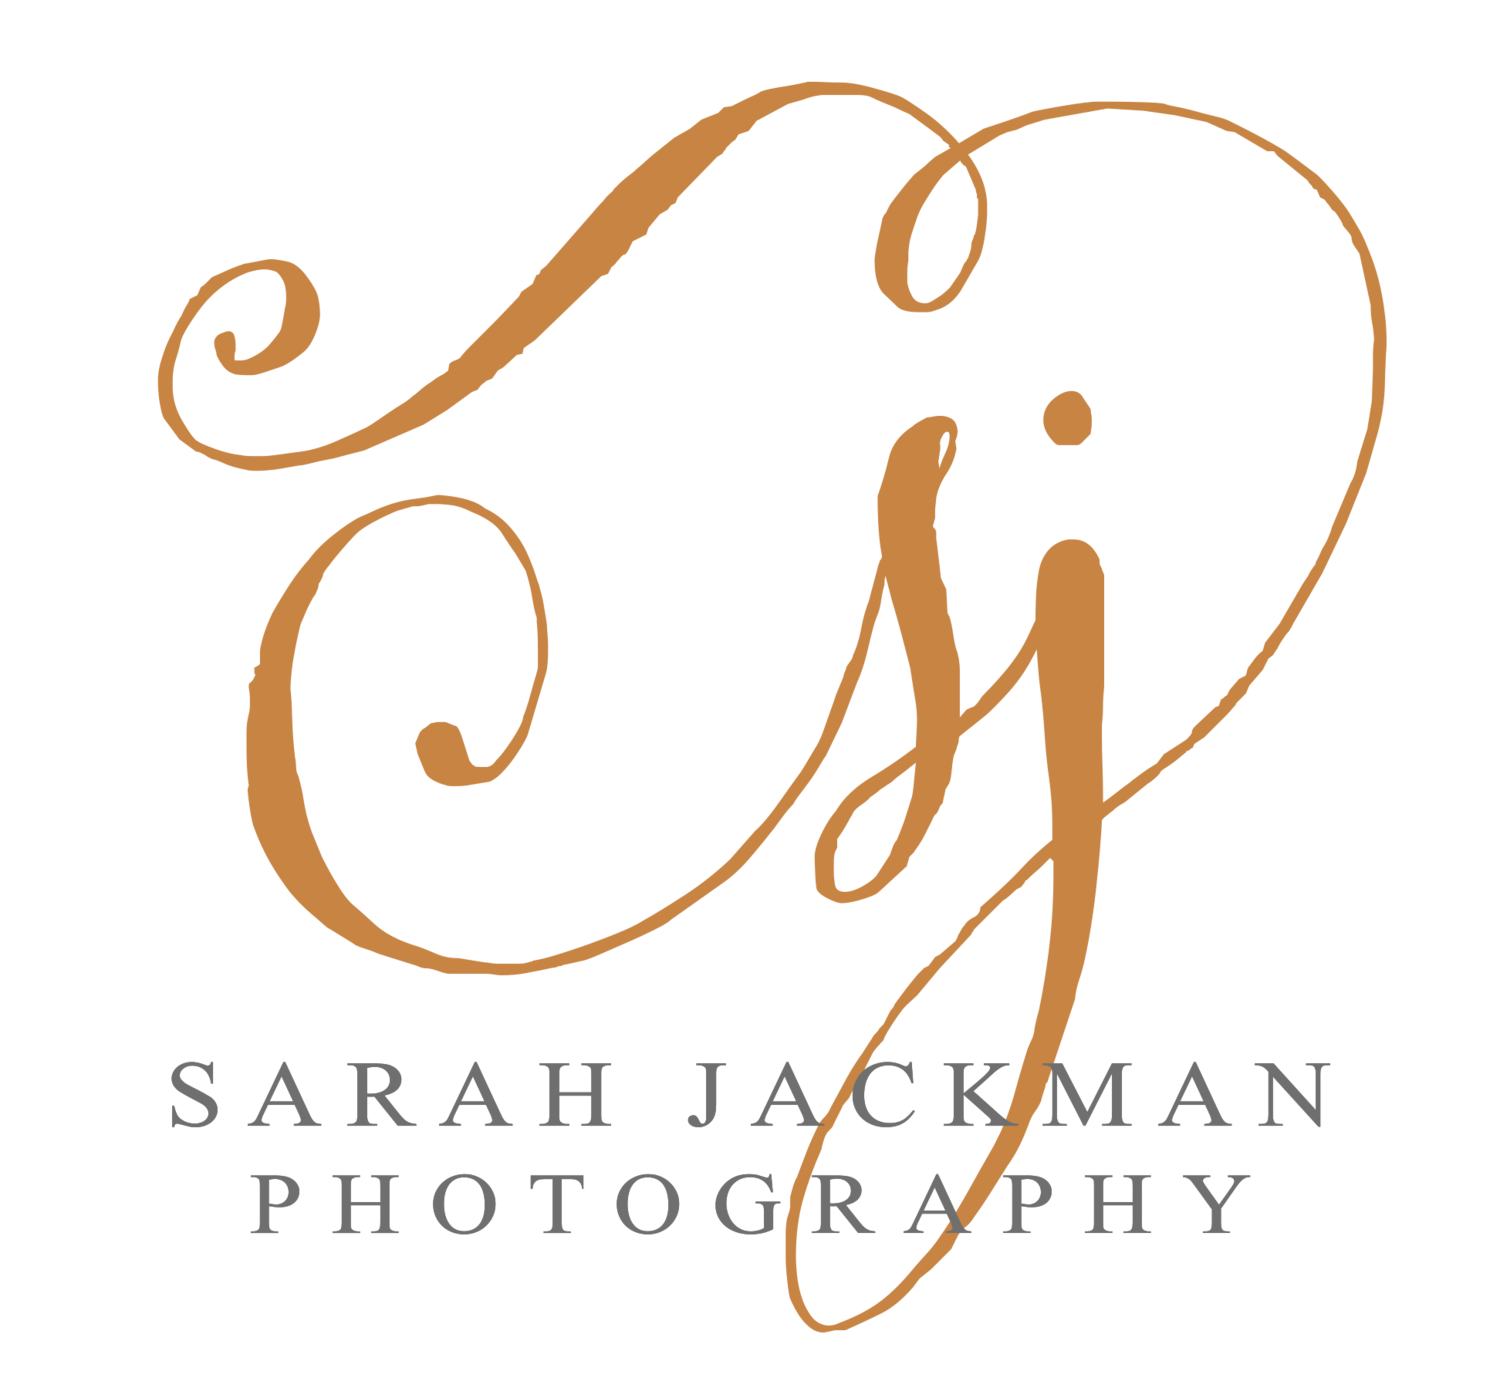 Photography studio now open. Memories clipart calligraphy